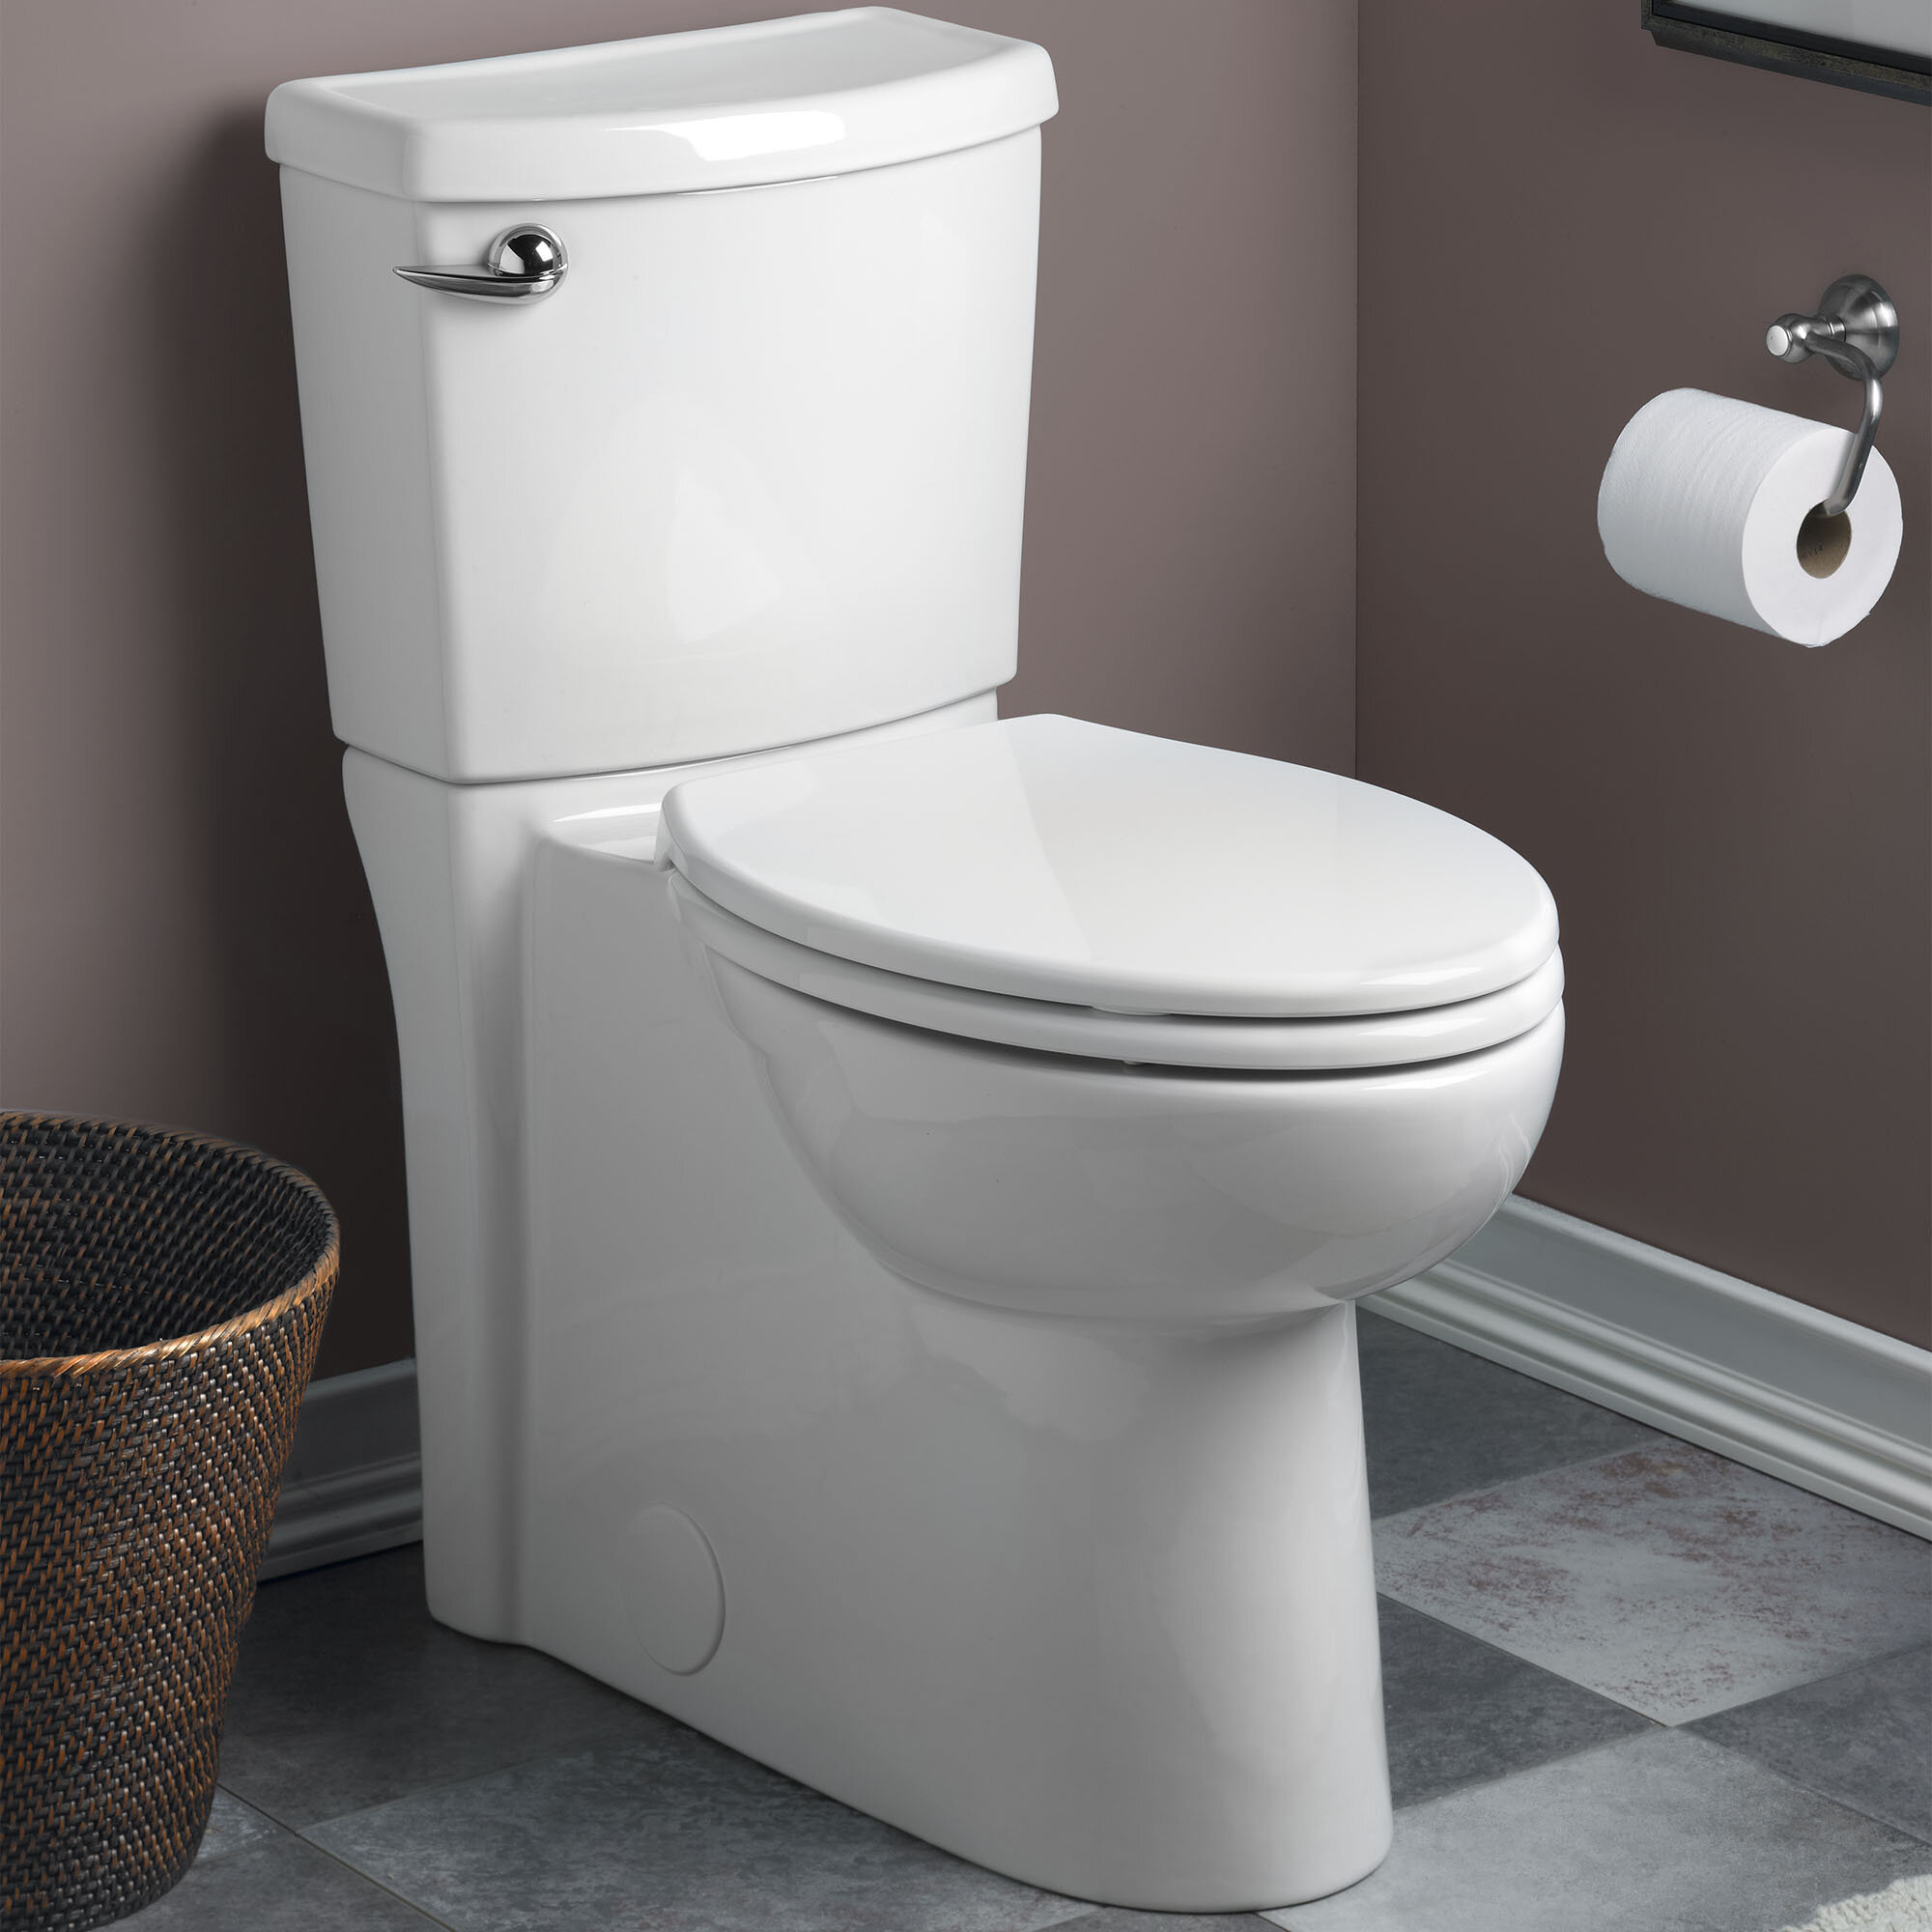 Pleasing Cadet 3 Right Height Round Two Piece Toilet Seat Included Onthecornerstone Fun Painted Chair Ideas Images Onthecornerstoneorg